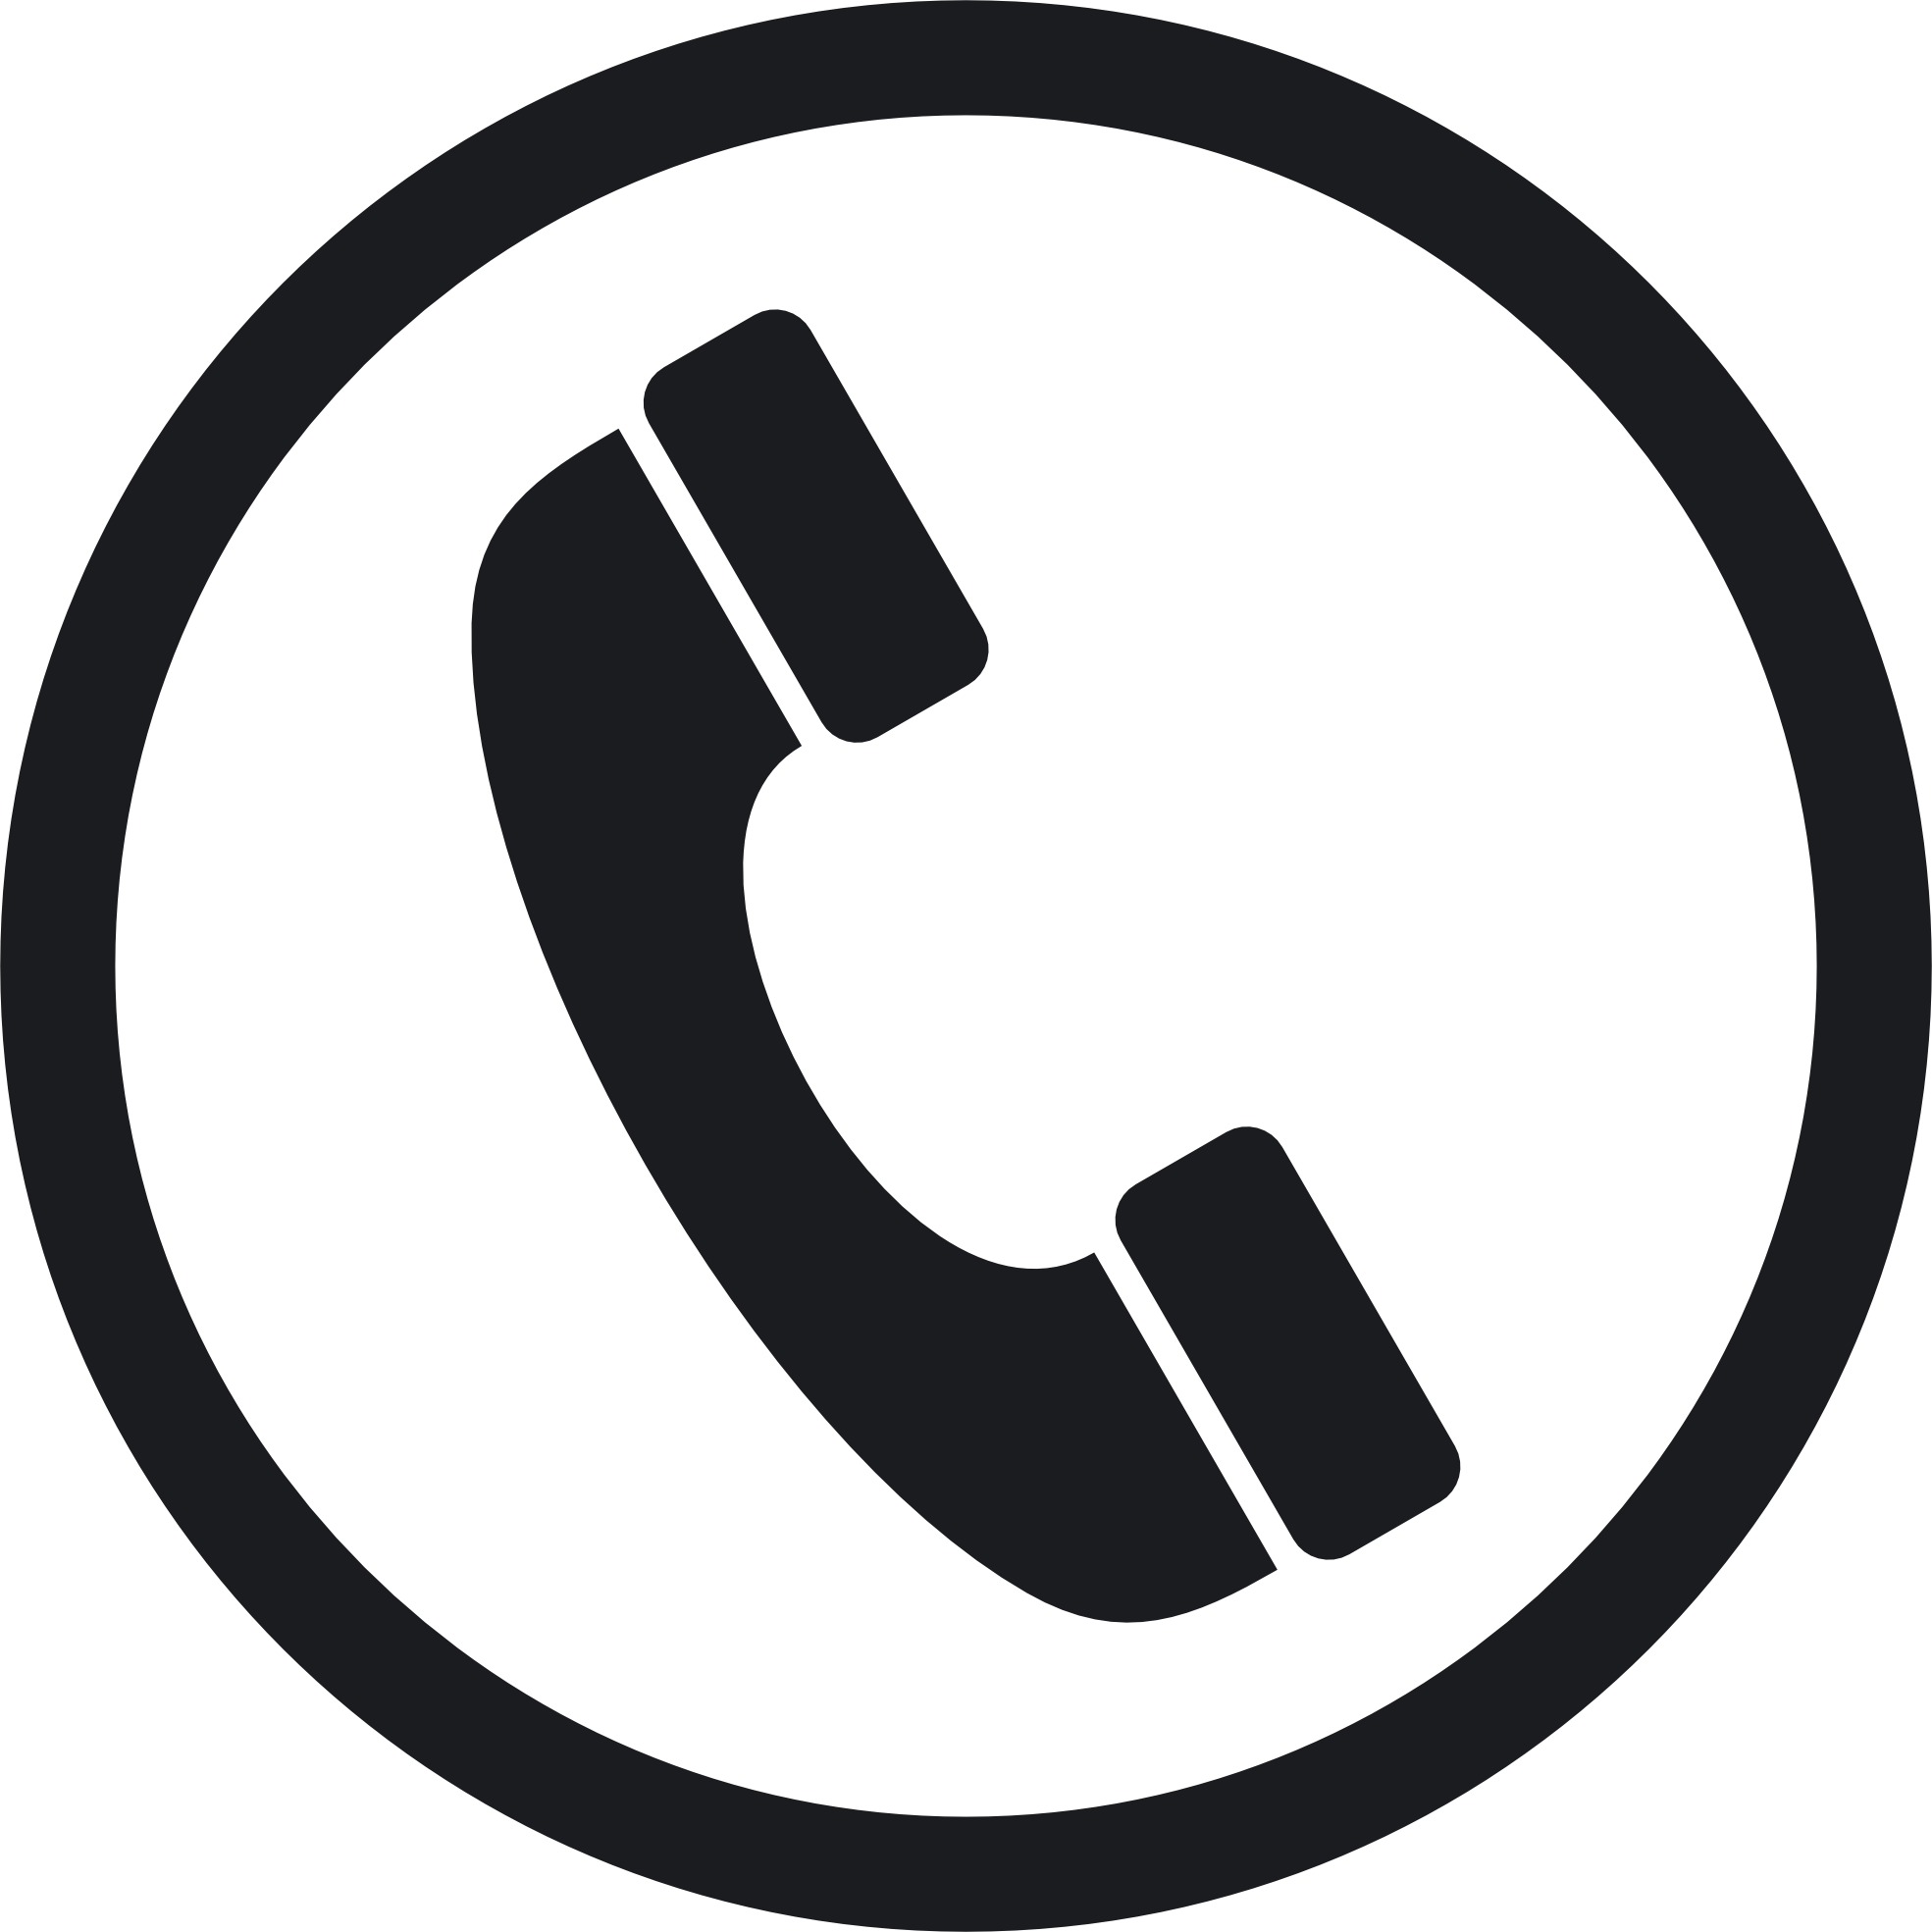 Phone Call PNG HD Transparent Phone Call HD.PNG Images..